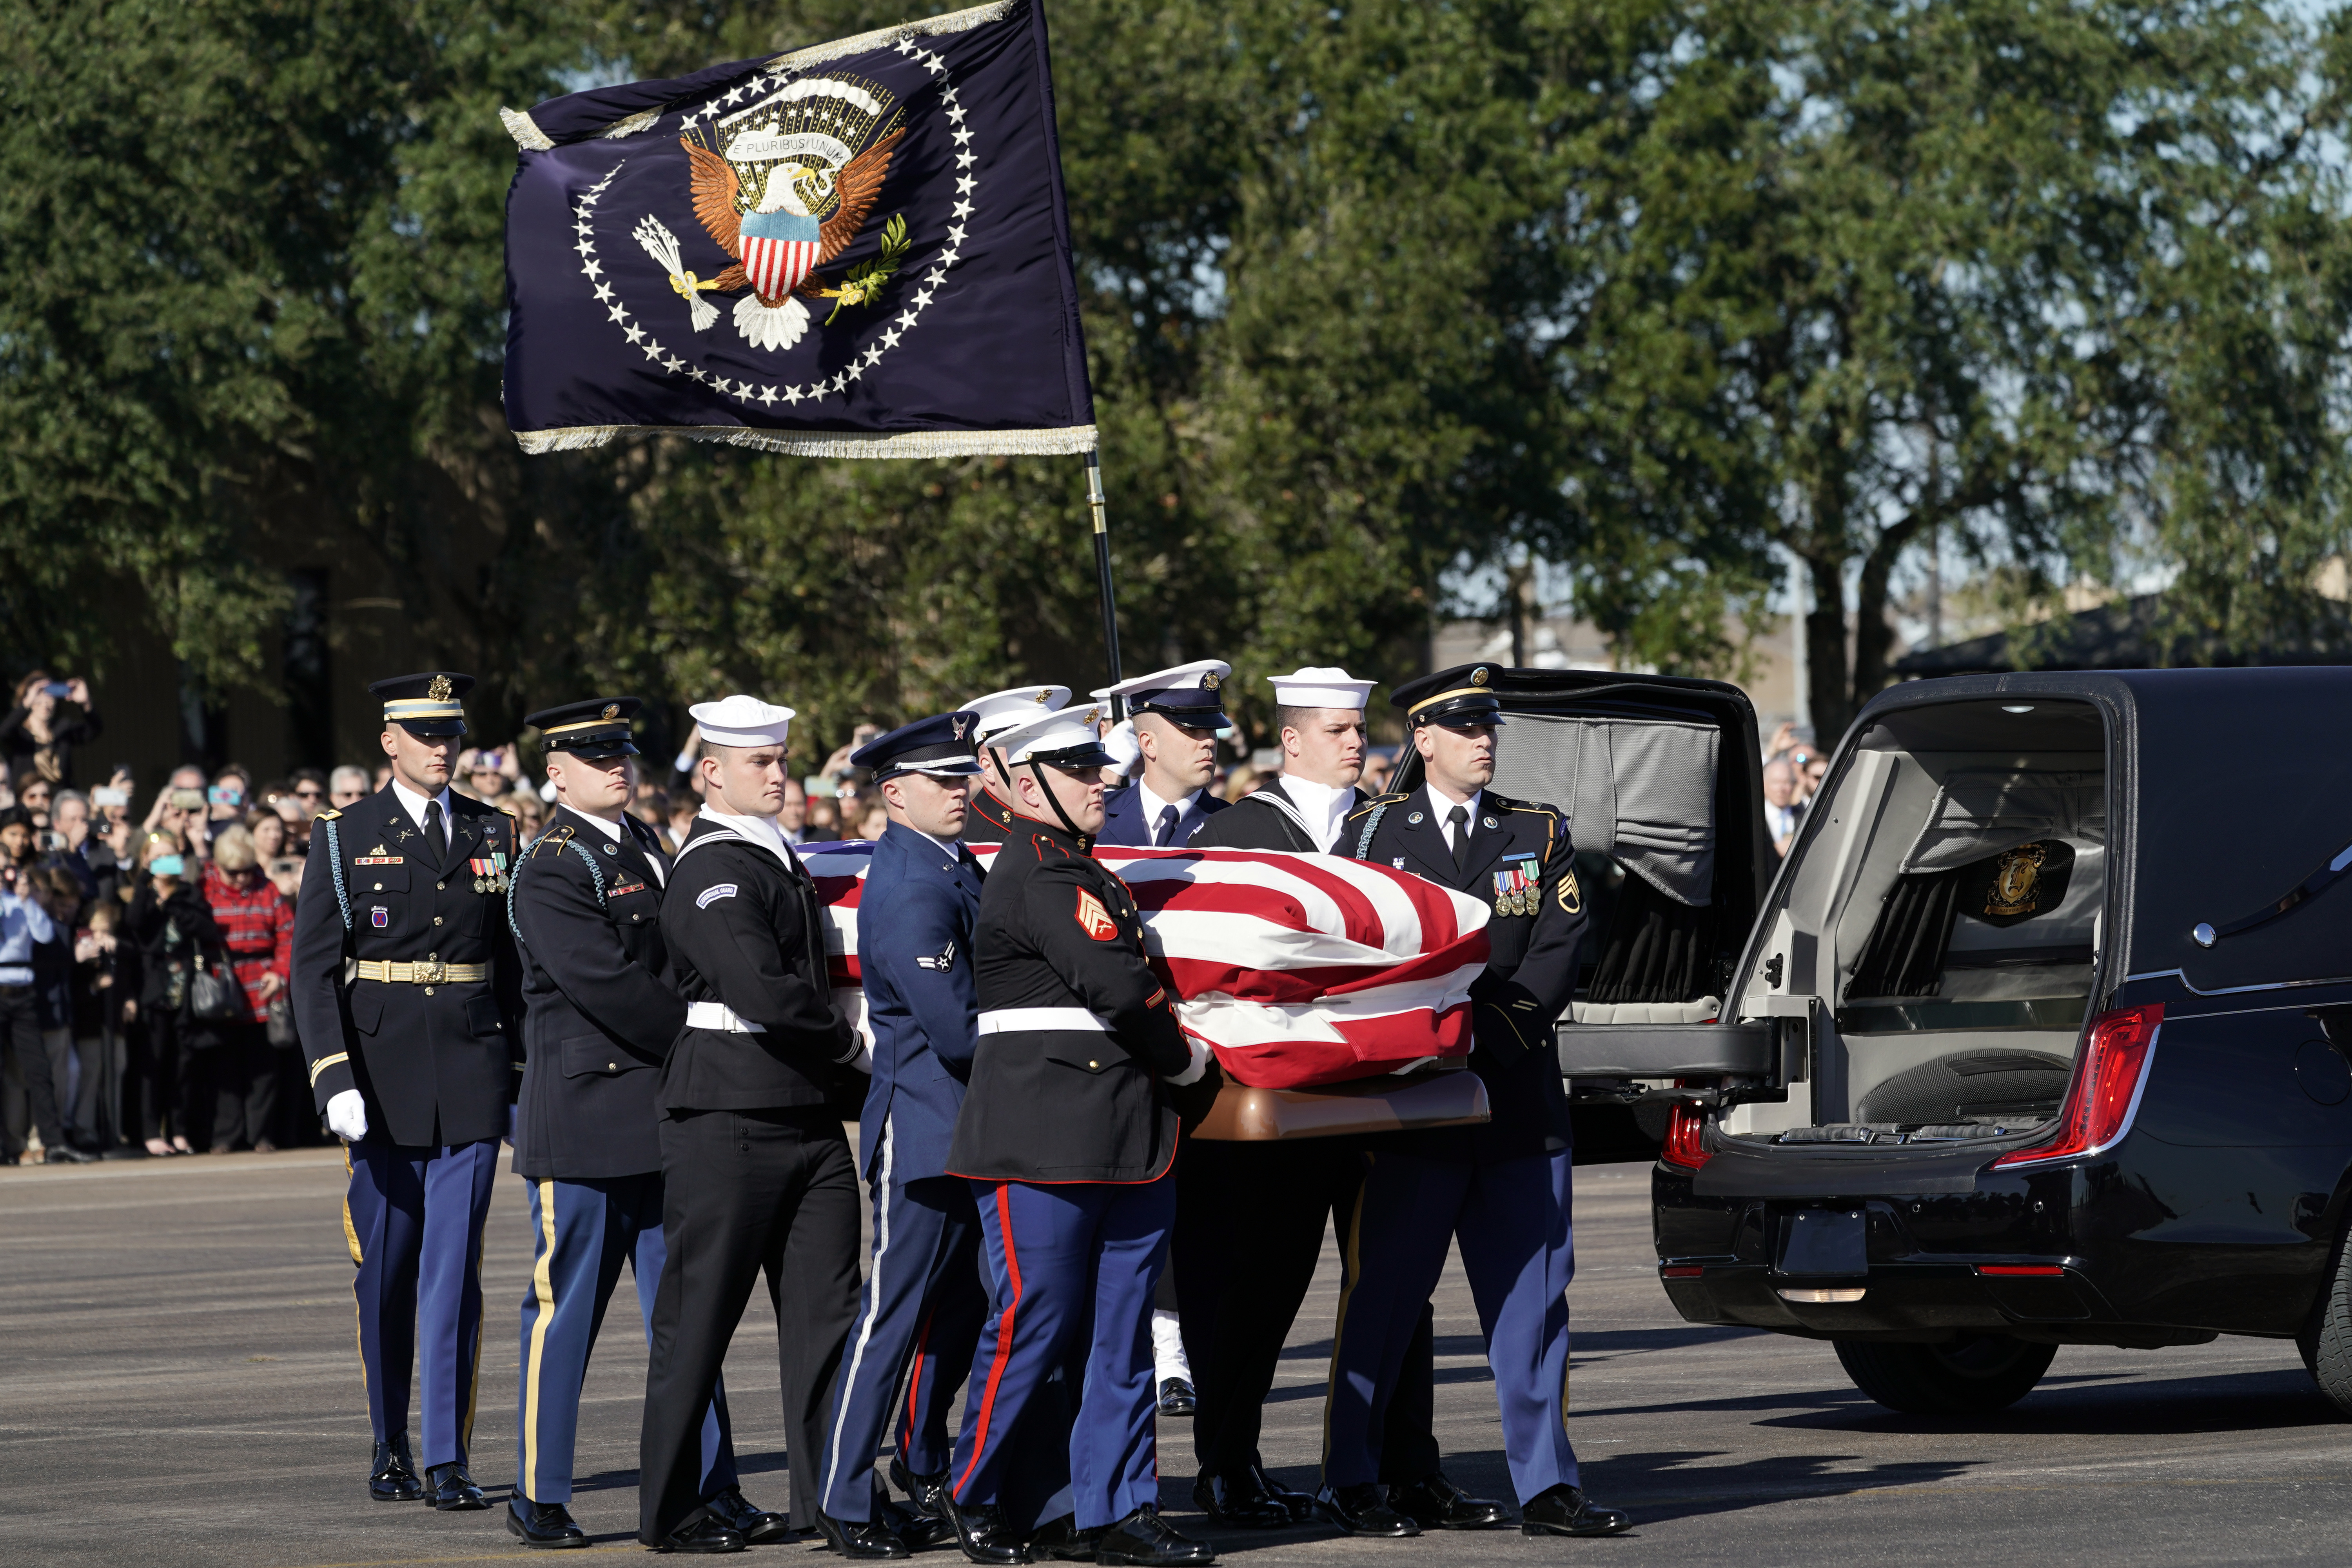 The flag-draped casket of former President George H.W. Bush is carried by a joint services military honor guard Monday, Dec. 3, 2018, at Ellington Field in Houston. (AP Photo/David J. Phillip, Pool)